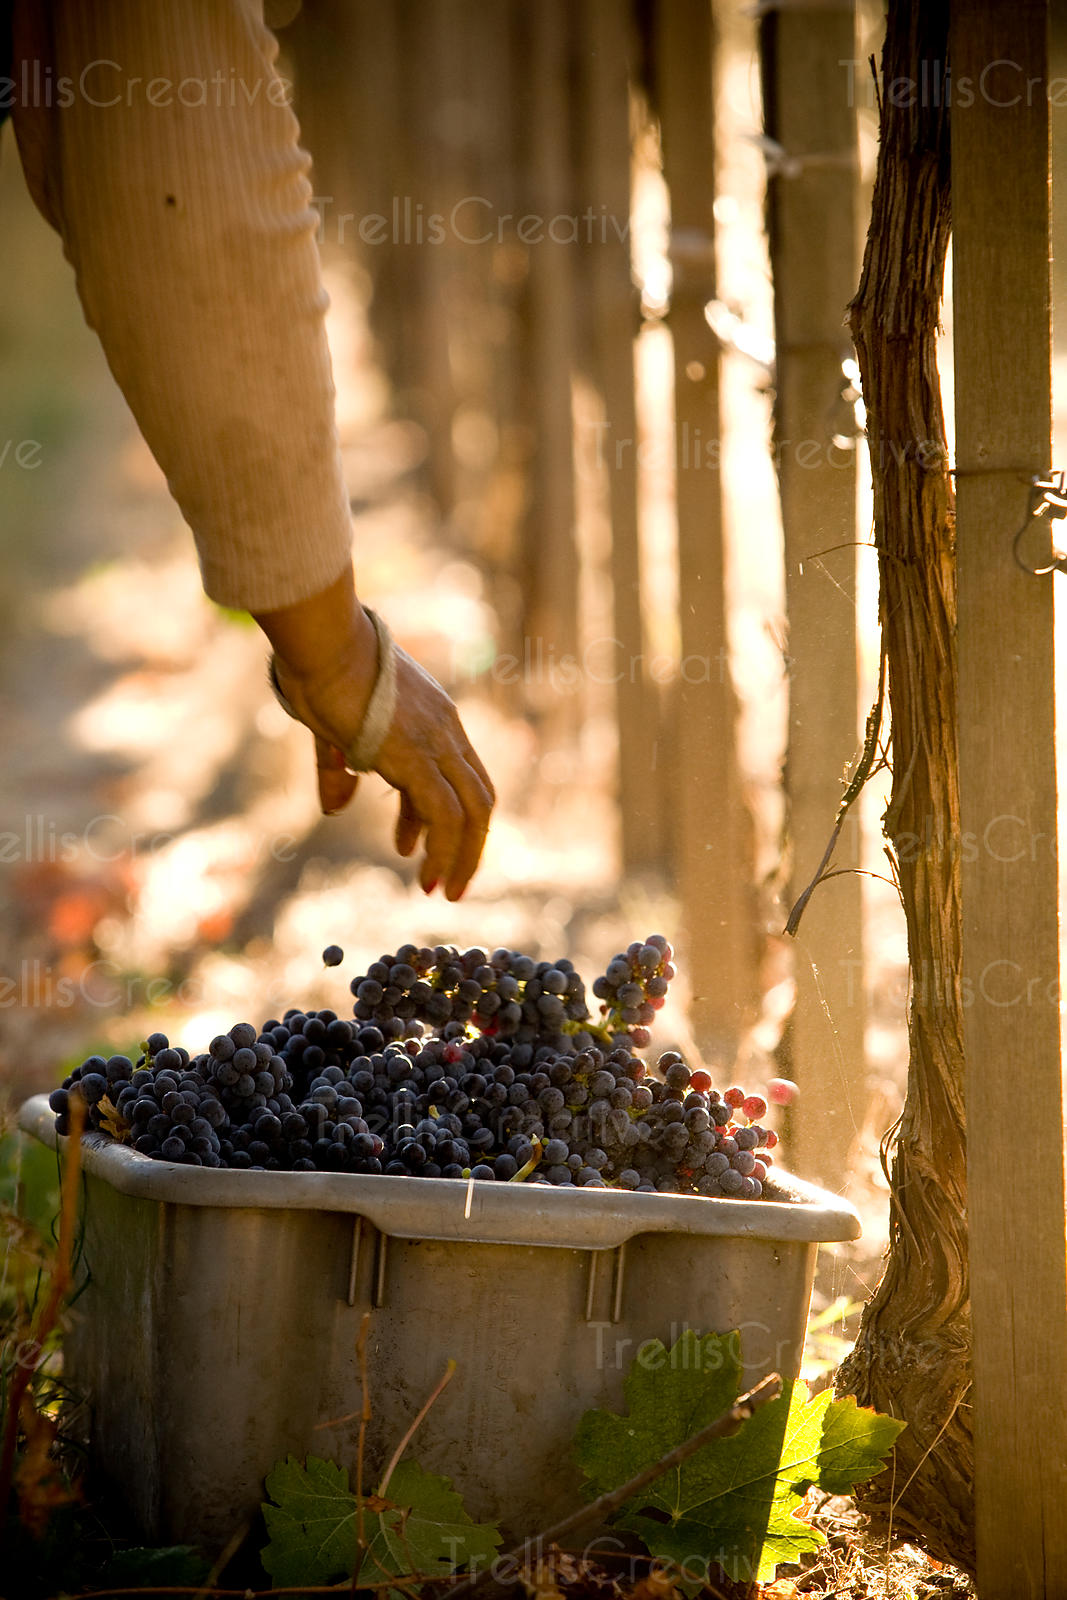 Placing harvested grapes into a bin